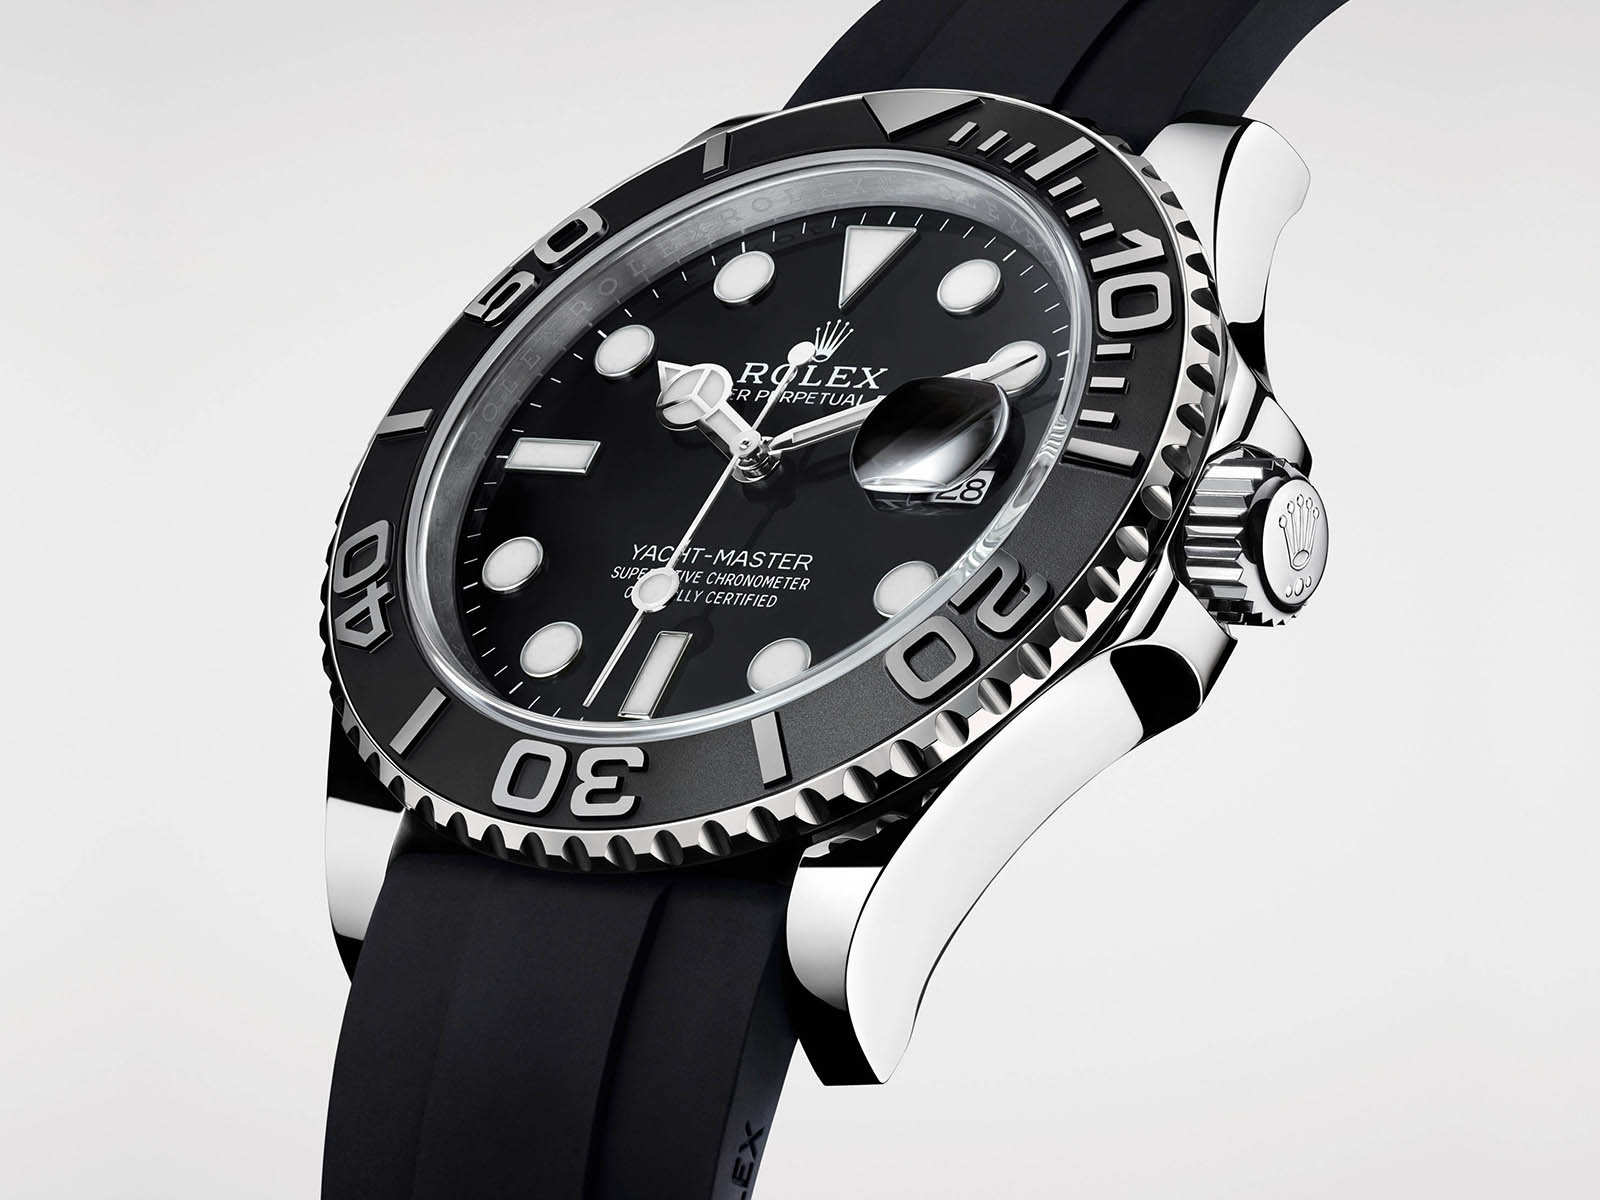 226659-rolex-oyster-perpetual-yacht-master-42-1.jpg